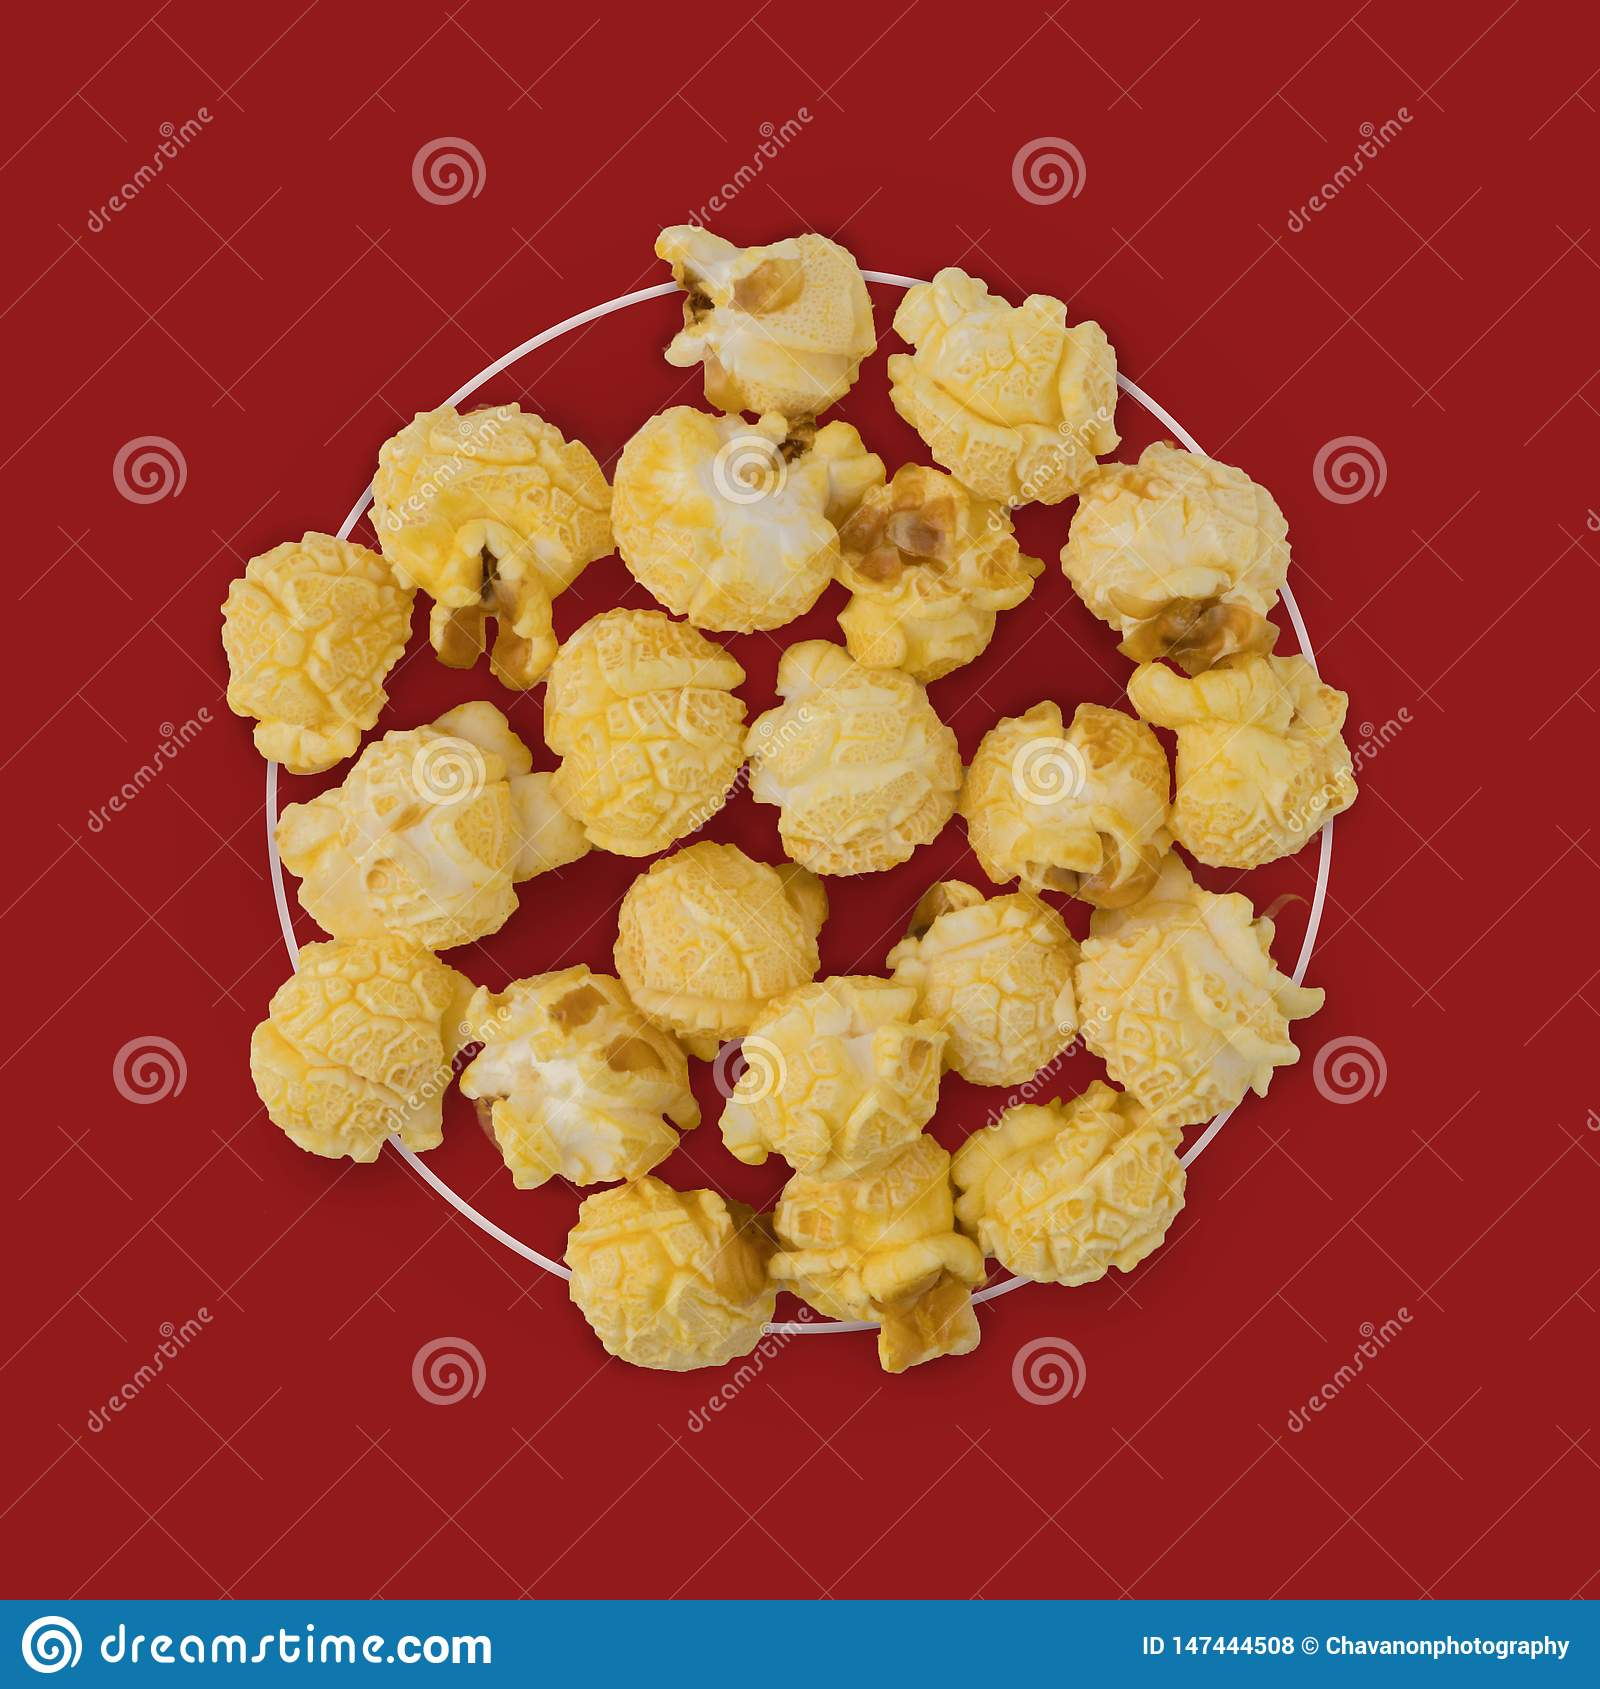 Popcorn flat lay composition on color background. cinema snack concept Modern style. creative photography. copy space